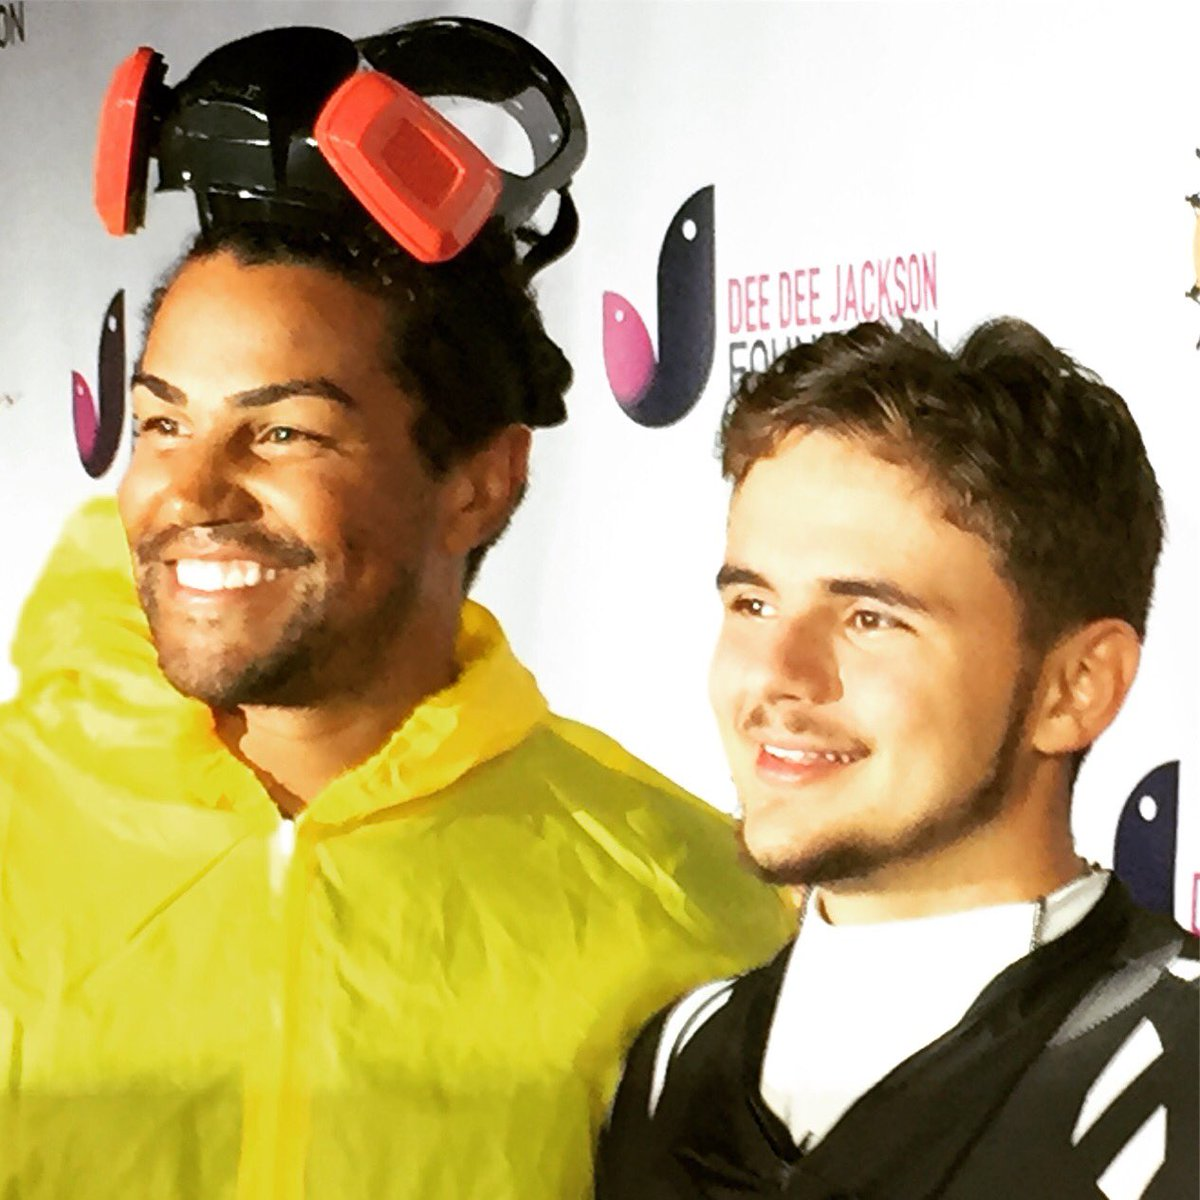 Happy birthday @princemjjjaxon. Words can't express how proud I am of you and all that you are. Keep growing. Keep learning. Keep being you. And please be careful on that 🏍!!!! I love you with all my heart.